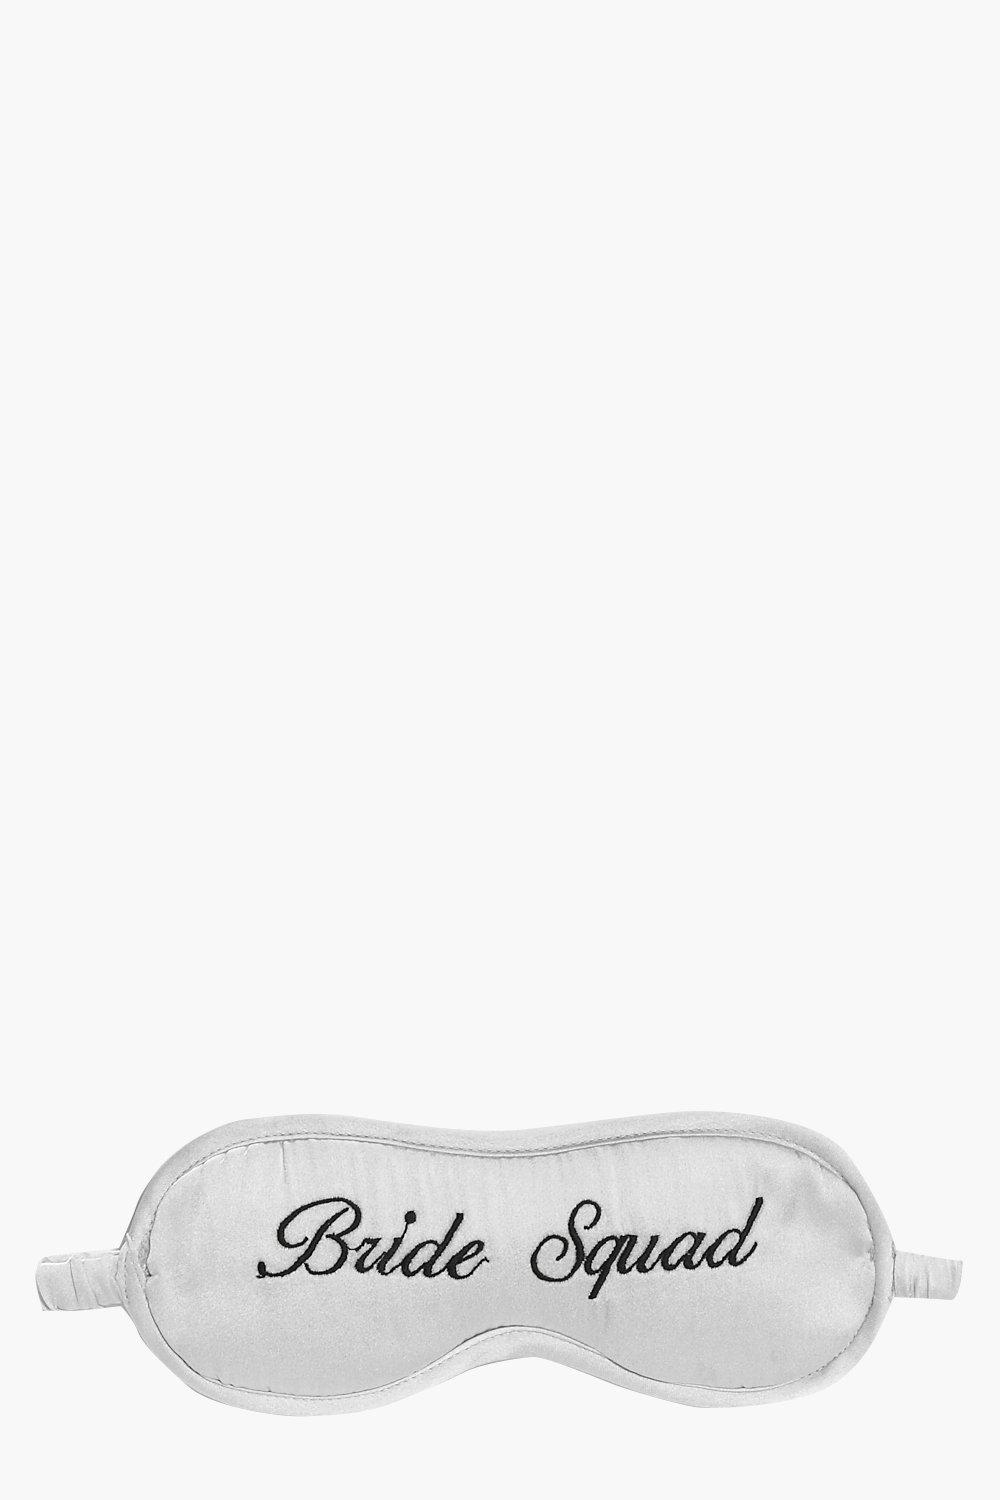 Squad Embroidered Satin Eye Mask - grey - Bride Sq